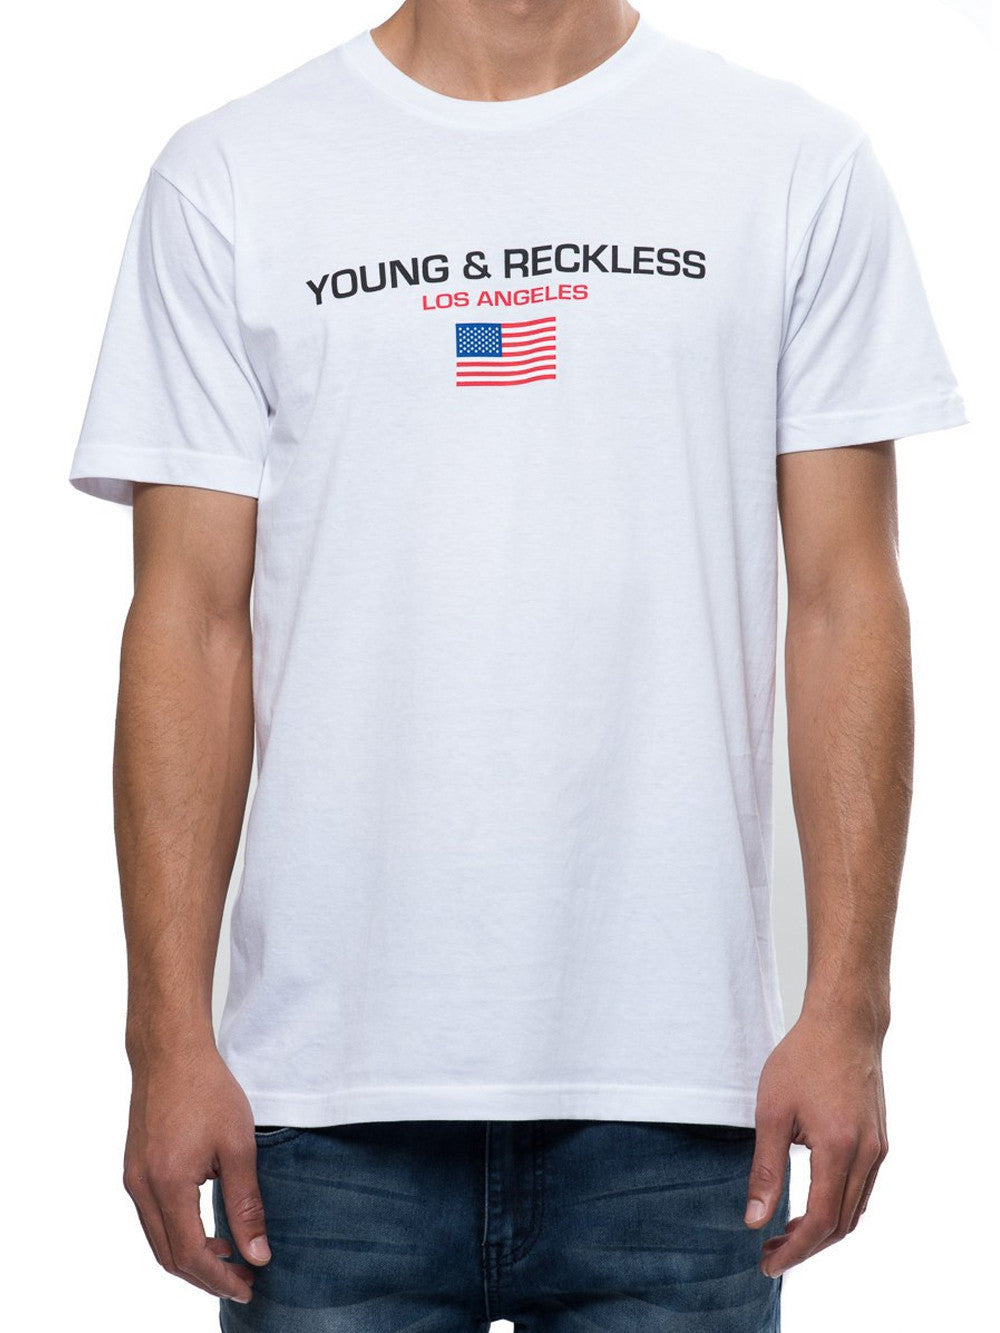 Young and Reckless Mens - Tees - Graphic Tee Liberty Tee - White